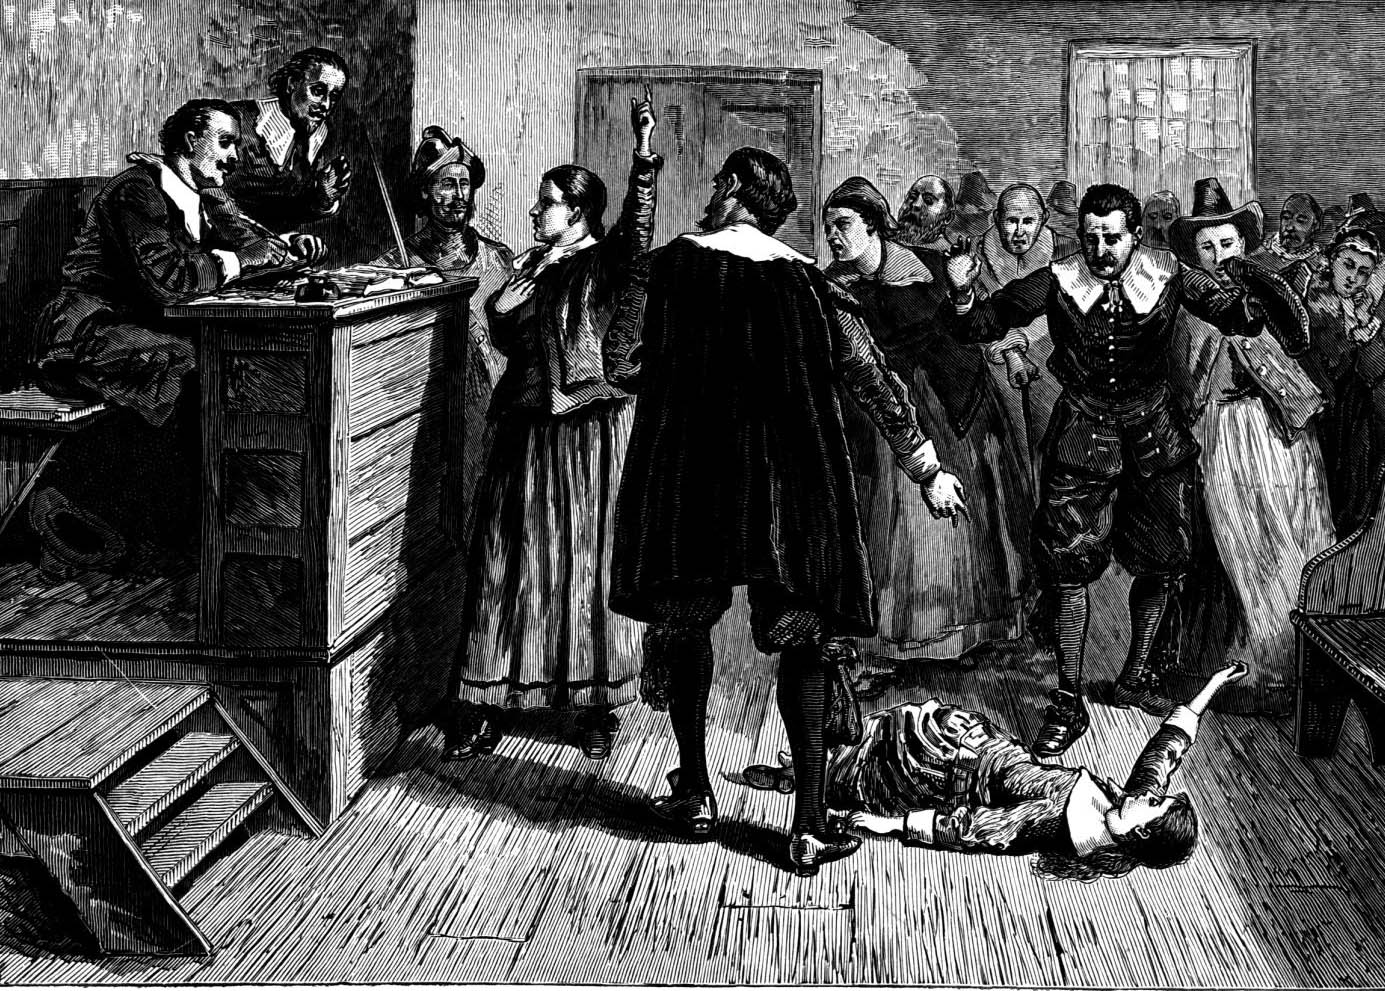 an overview of the history of witchcraft in the 17th century new england A fever in salem: a new interpretation of the new england witch trials  a brief  introduction to the witchcraze in seventeenth-century new england chapters 2.